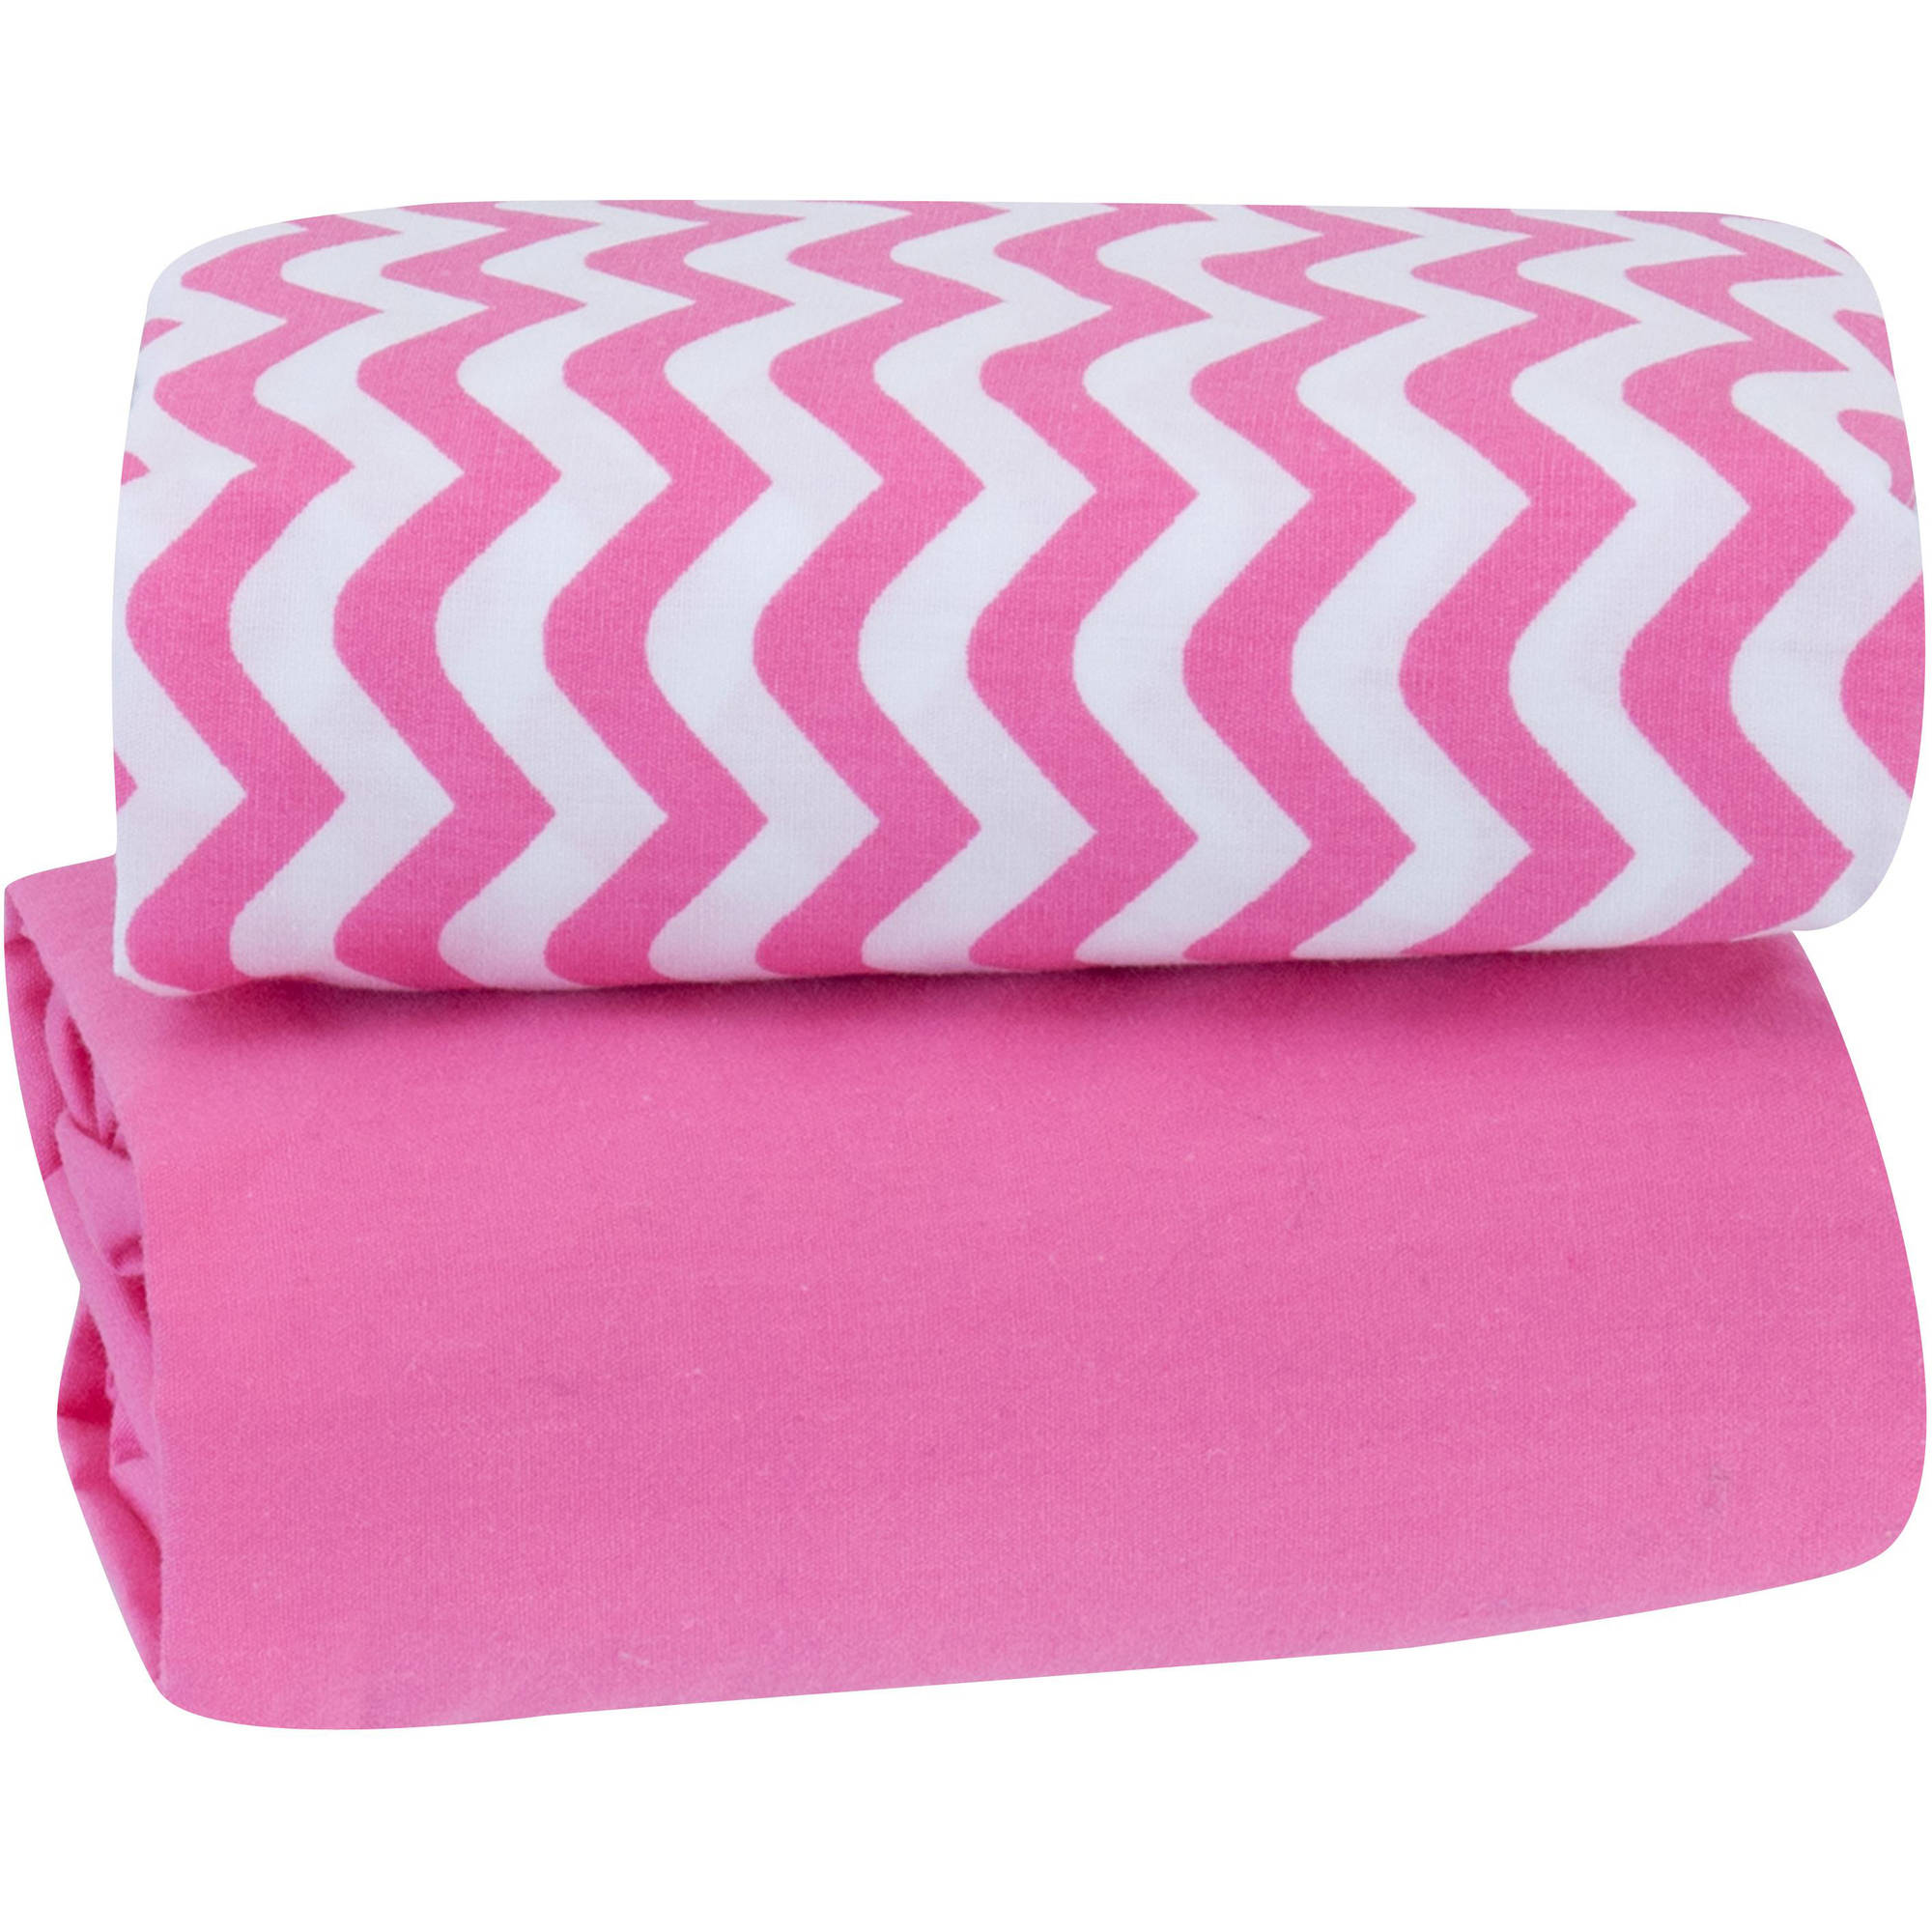 Garanimals Playard Sheet, 2pk, Strawberry Pink